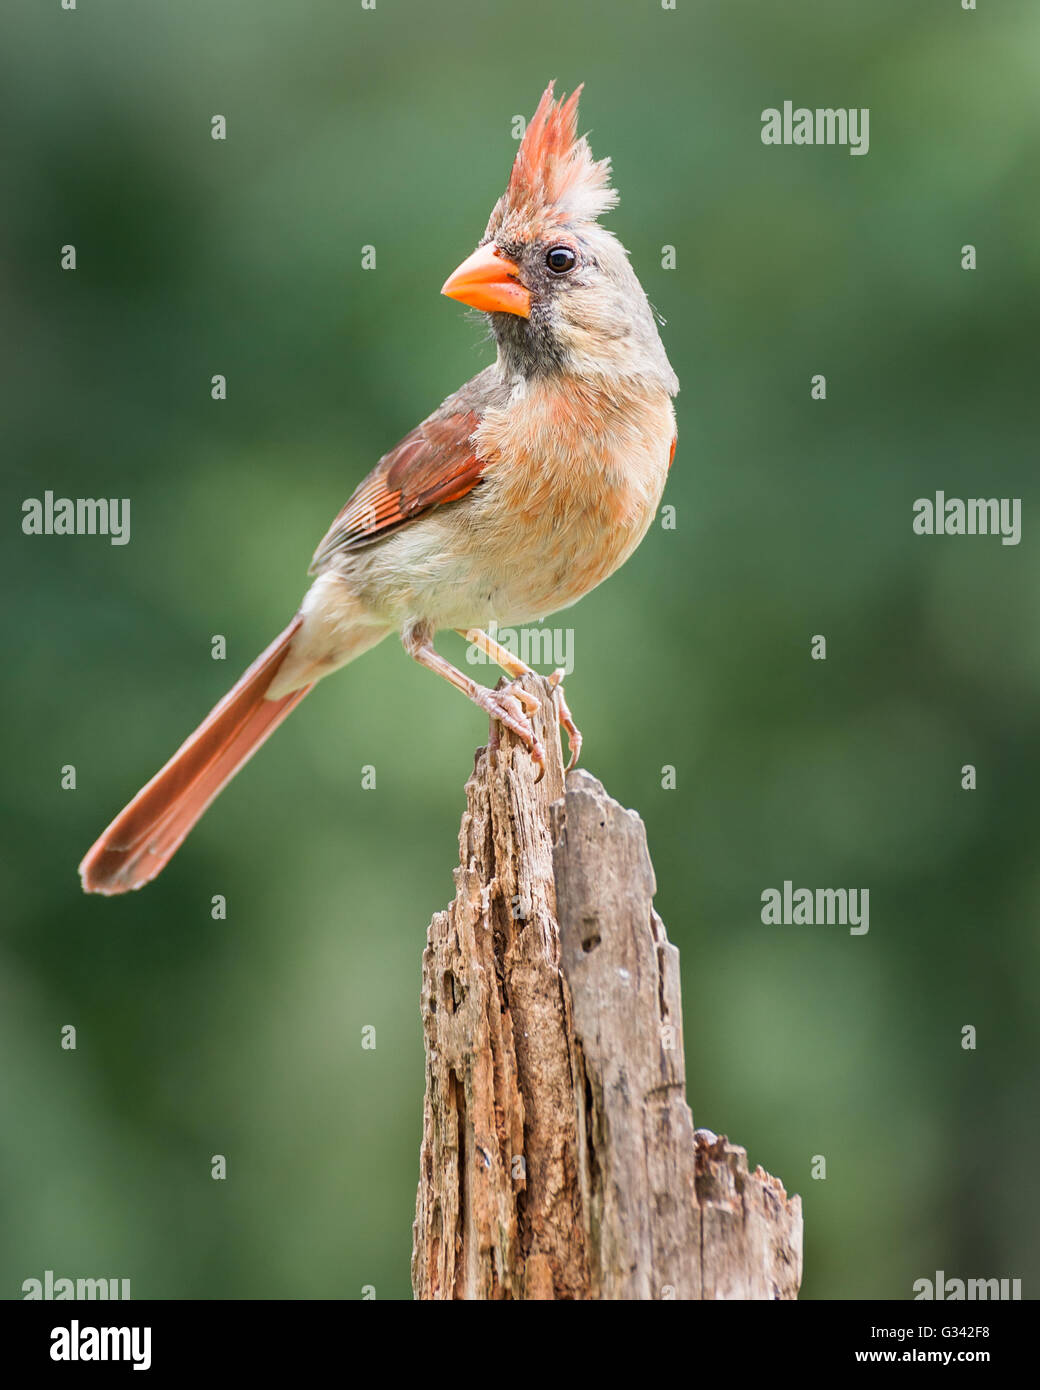 A female northern cardinal perched on a pine stump. Stock Photo